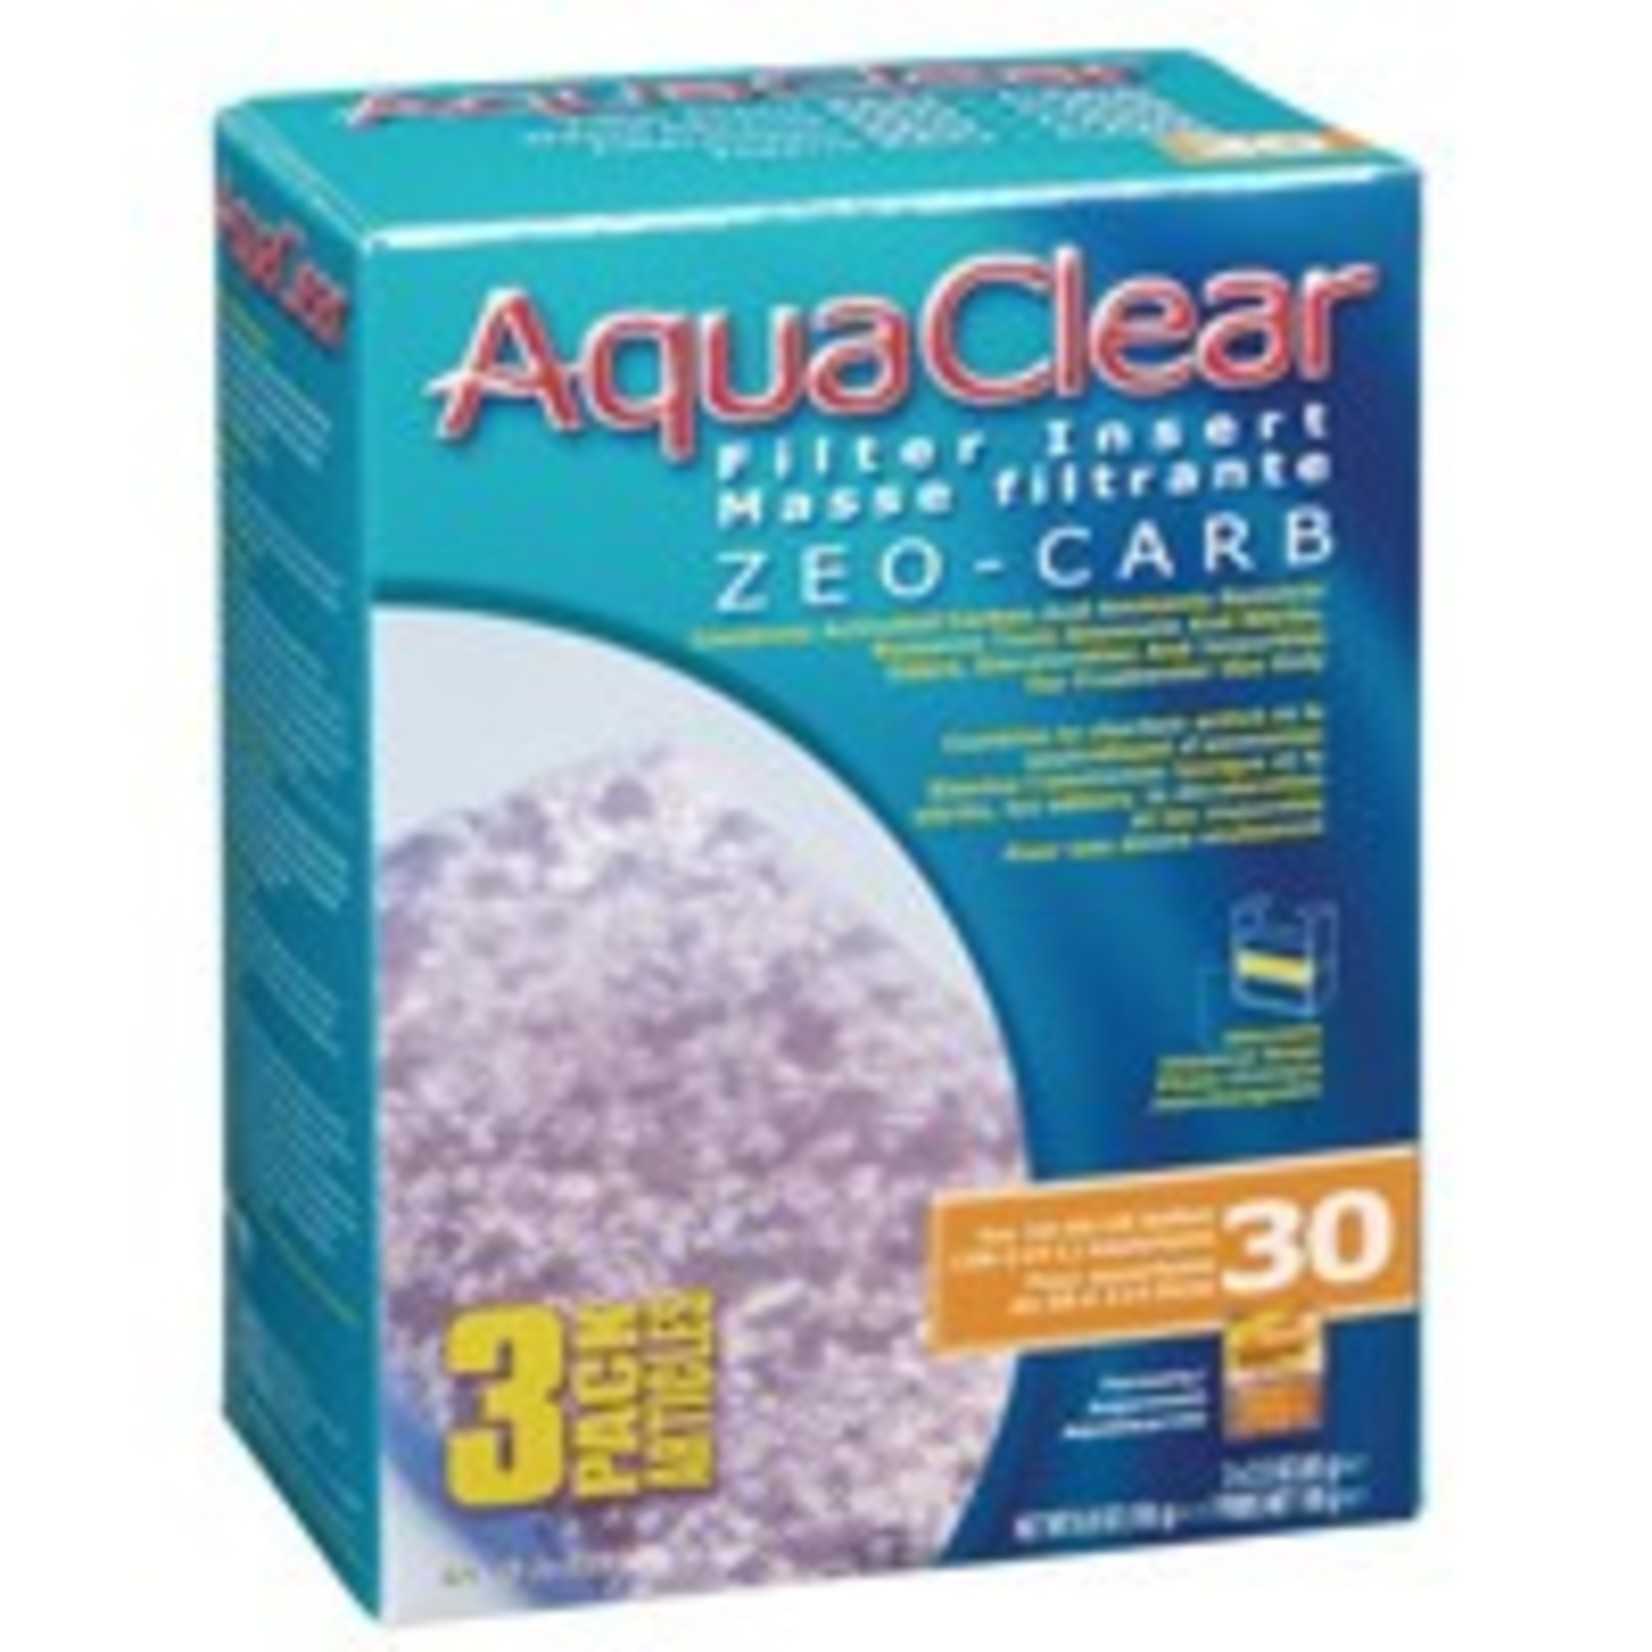 AquaClear 30 Zeo-Carb Filter insert, 3 pack, 195 g (6.9 oz )